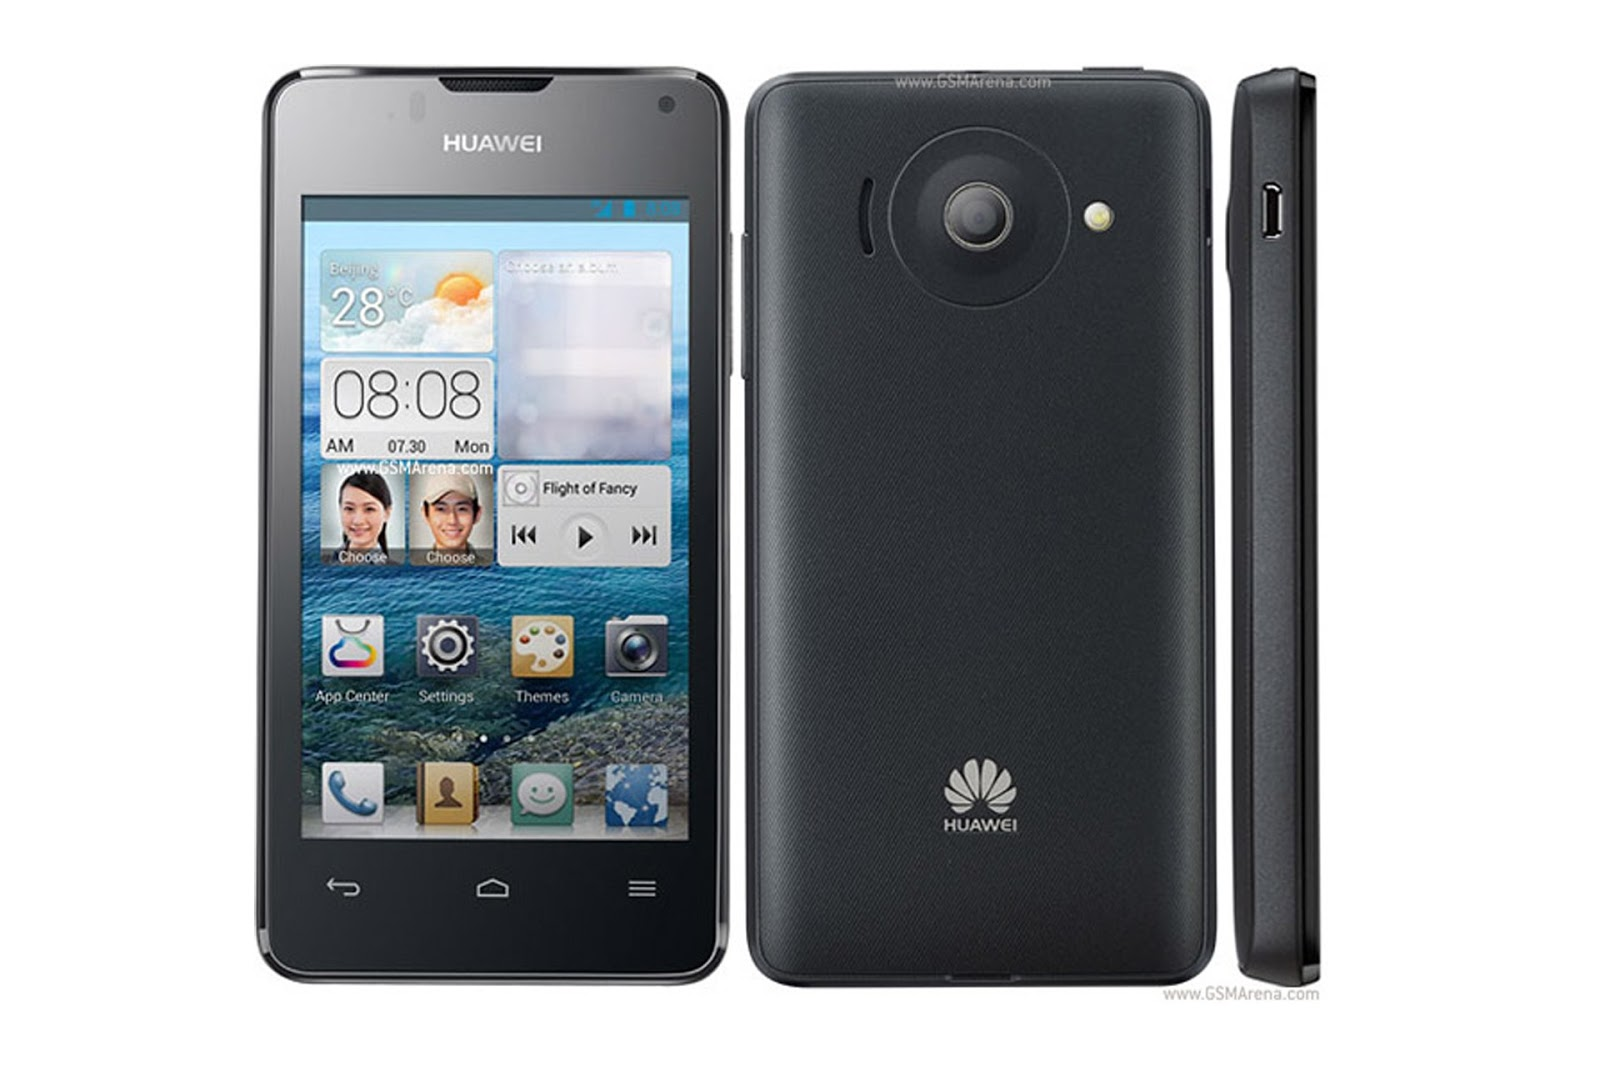 FOYSAL TELECOM ANDROID OFFICIAL FIRMWARE: HUAWEI Y300-0100 ...